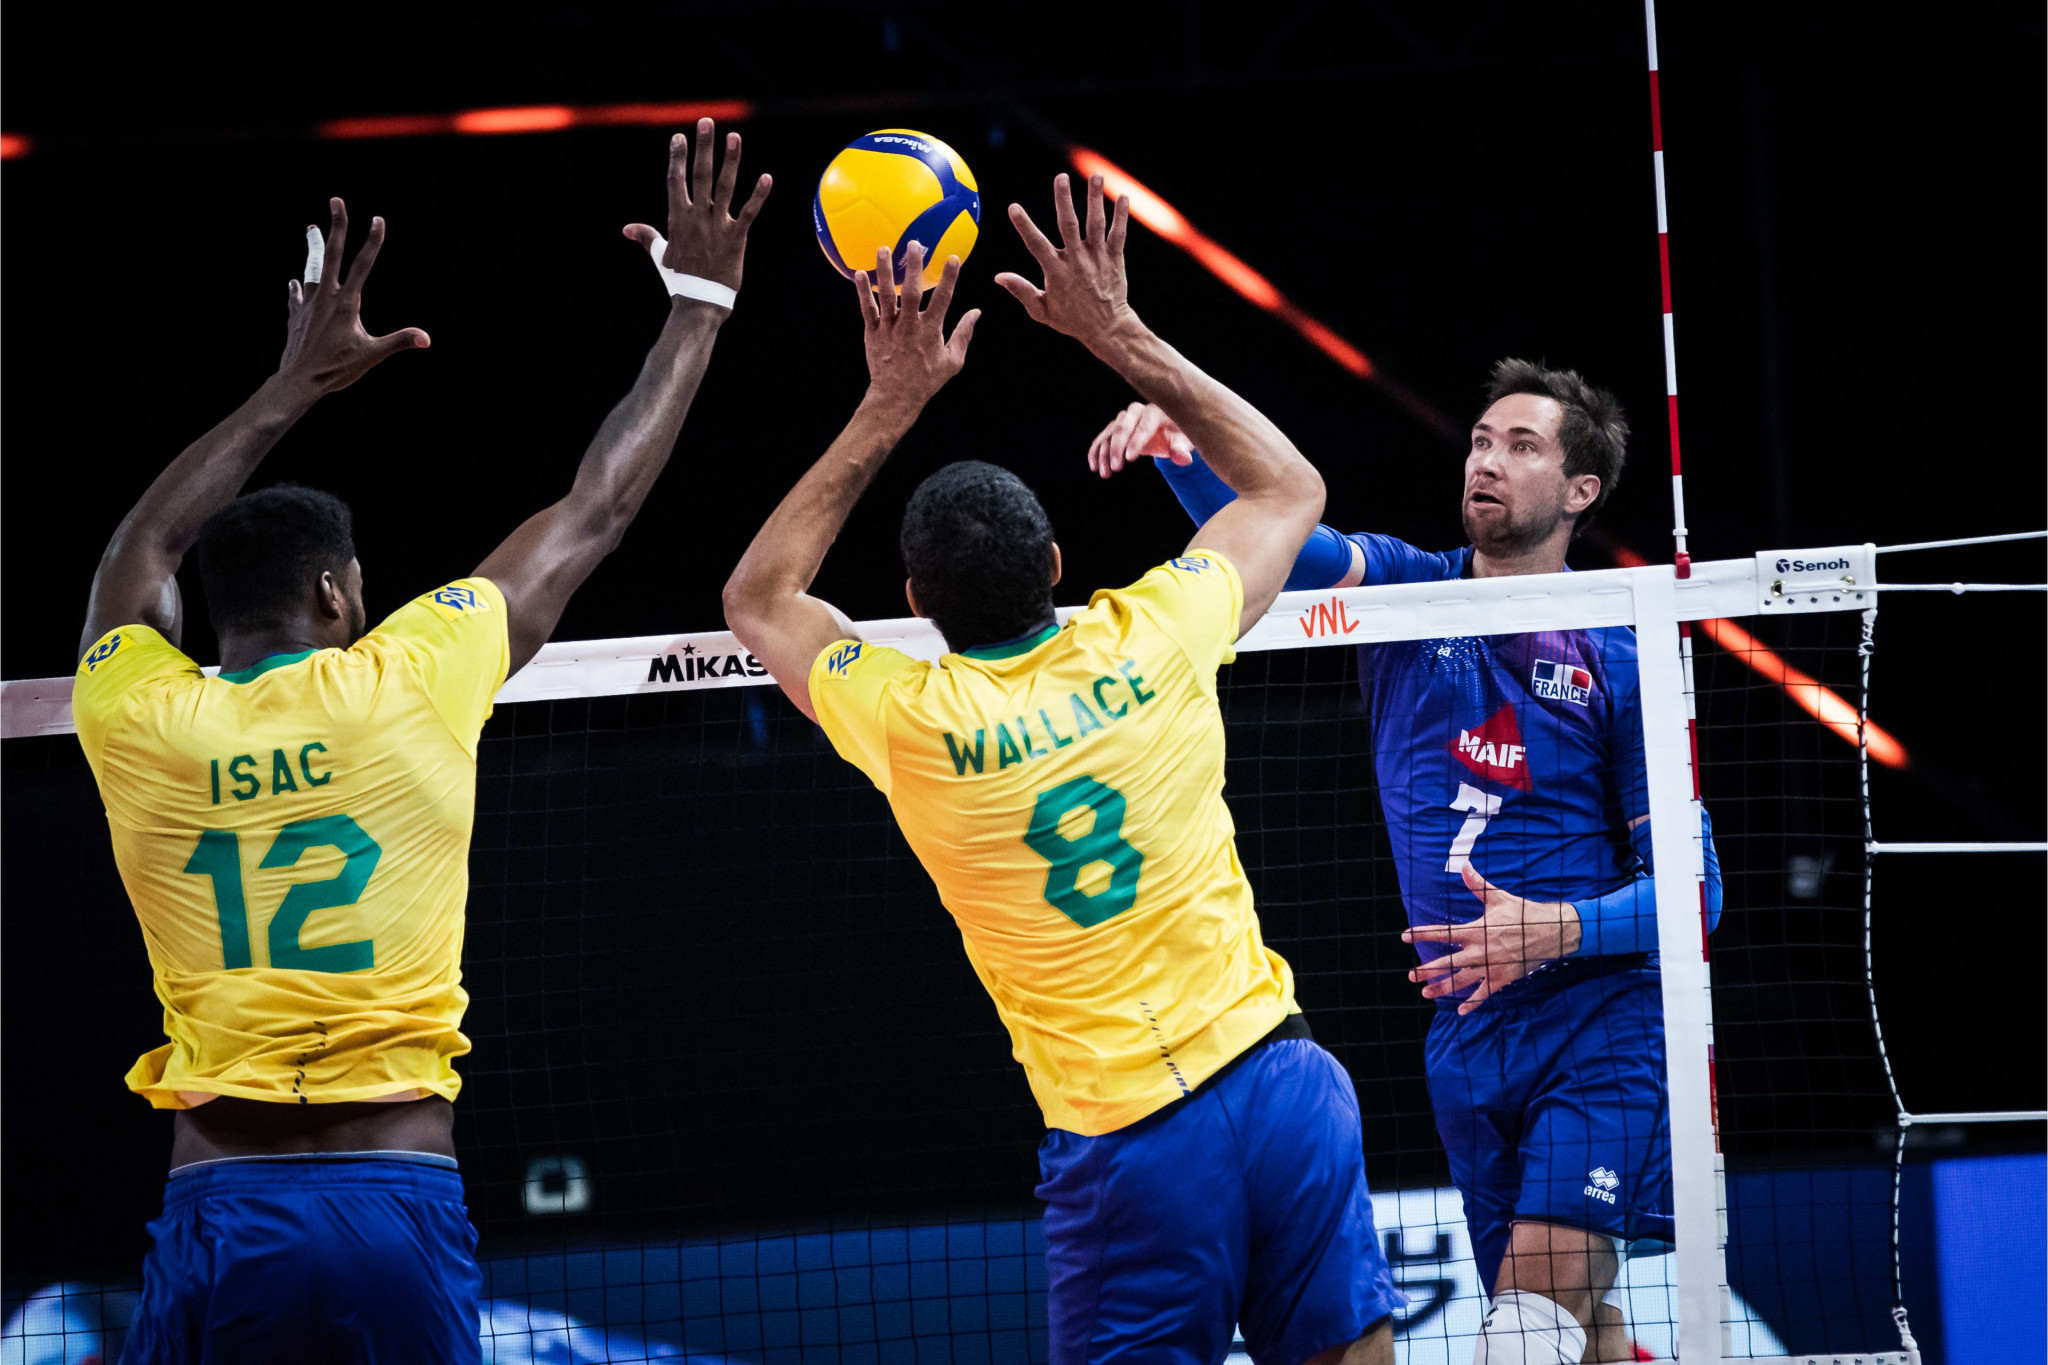 Brazil lead men's Volleyball Nations League after third week of matches